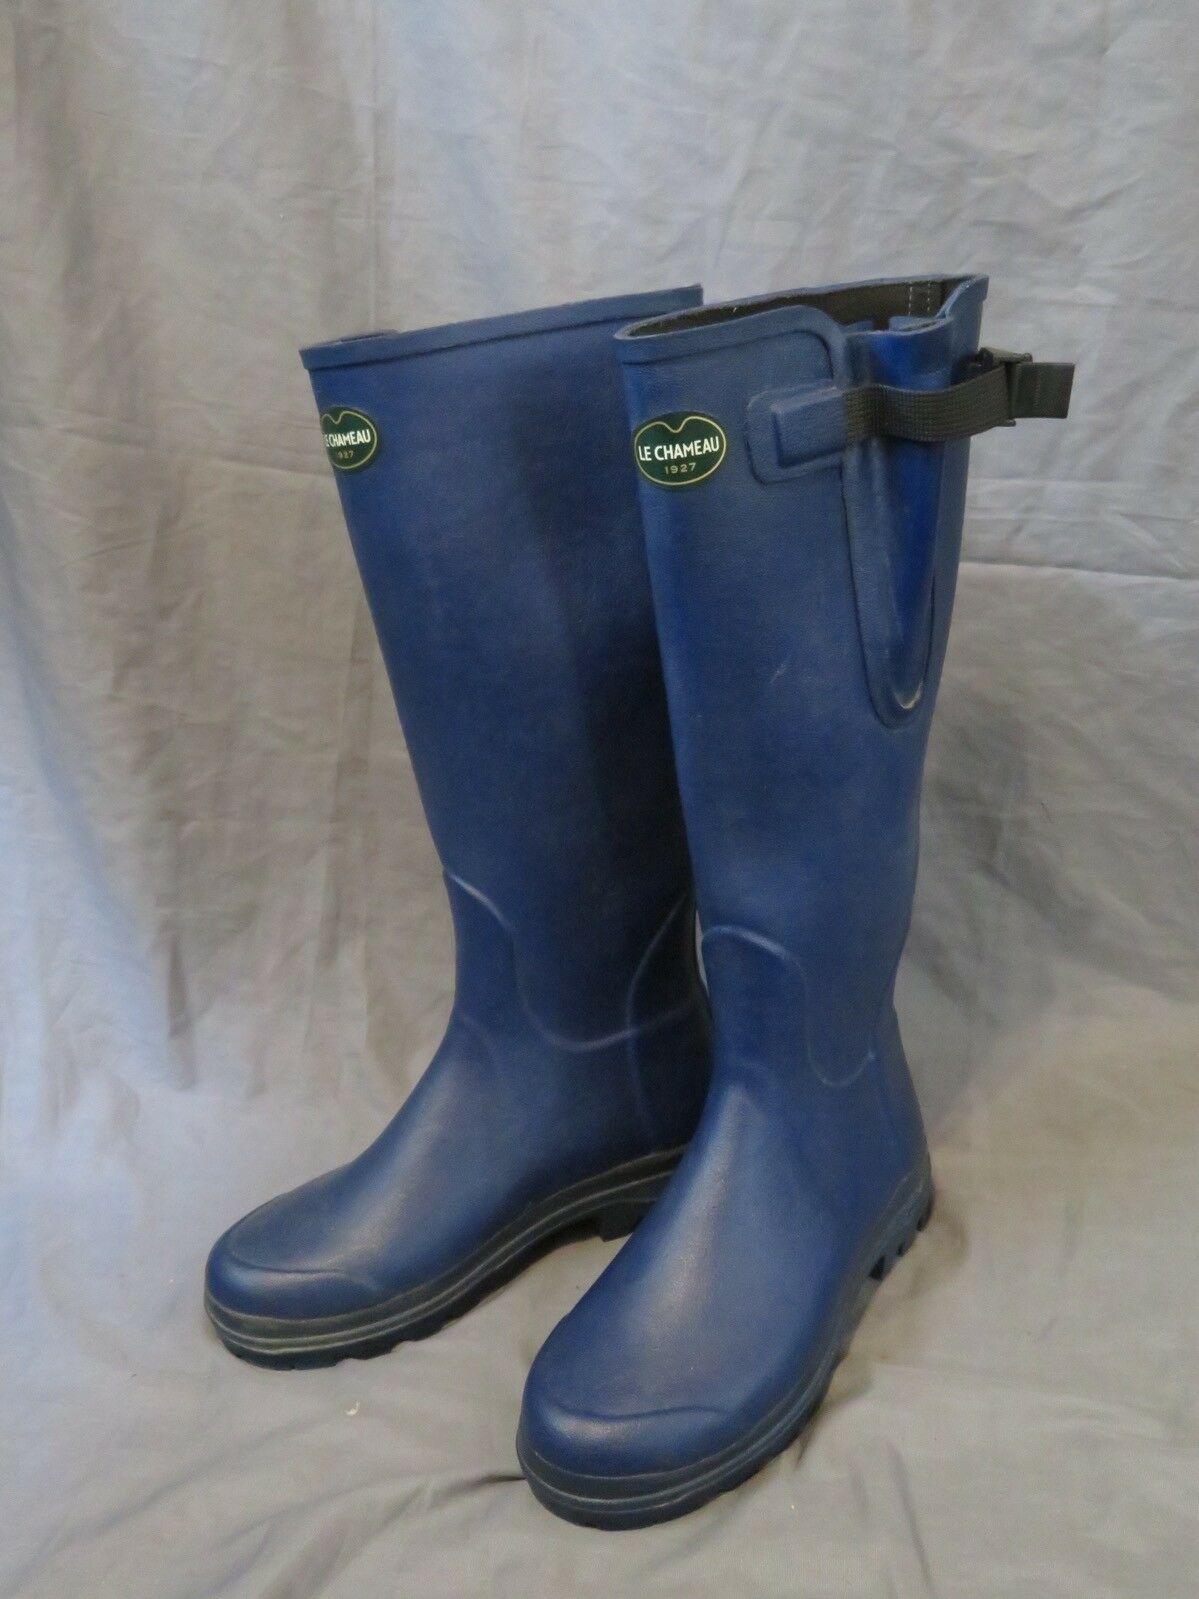 Women's Le Chameau 1927 Wellingtons Tall Blue Rubber Rain Boots Size 7 ()